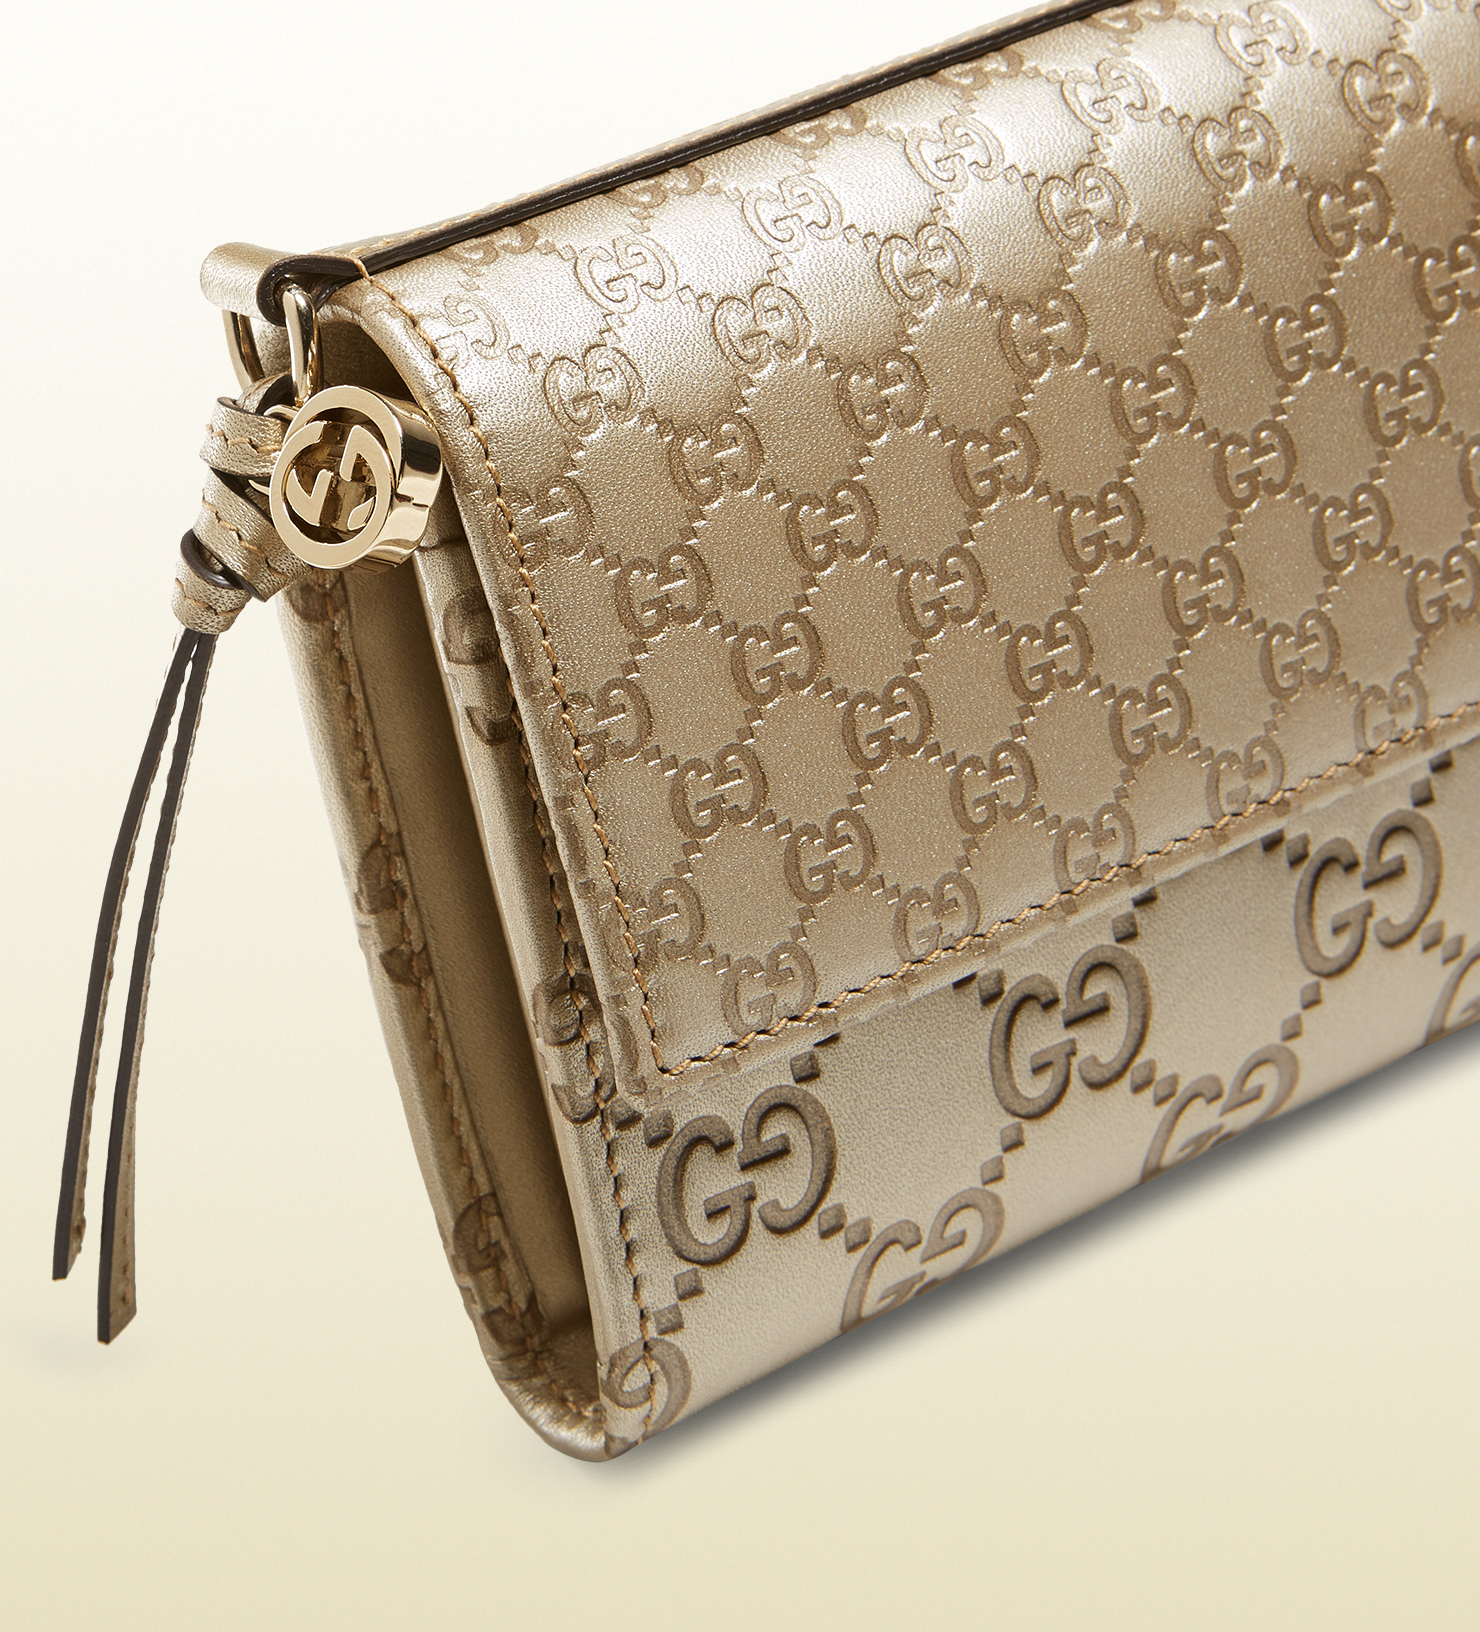 Lyst - Gucci Bree Ssima Leather Continental Wallet in Metallic